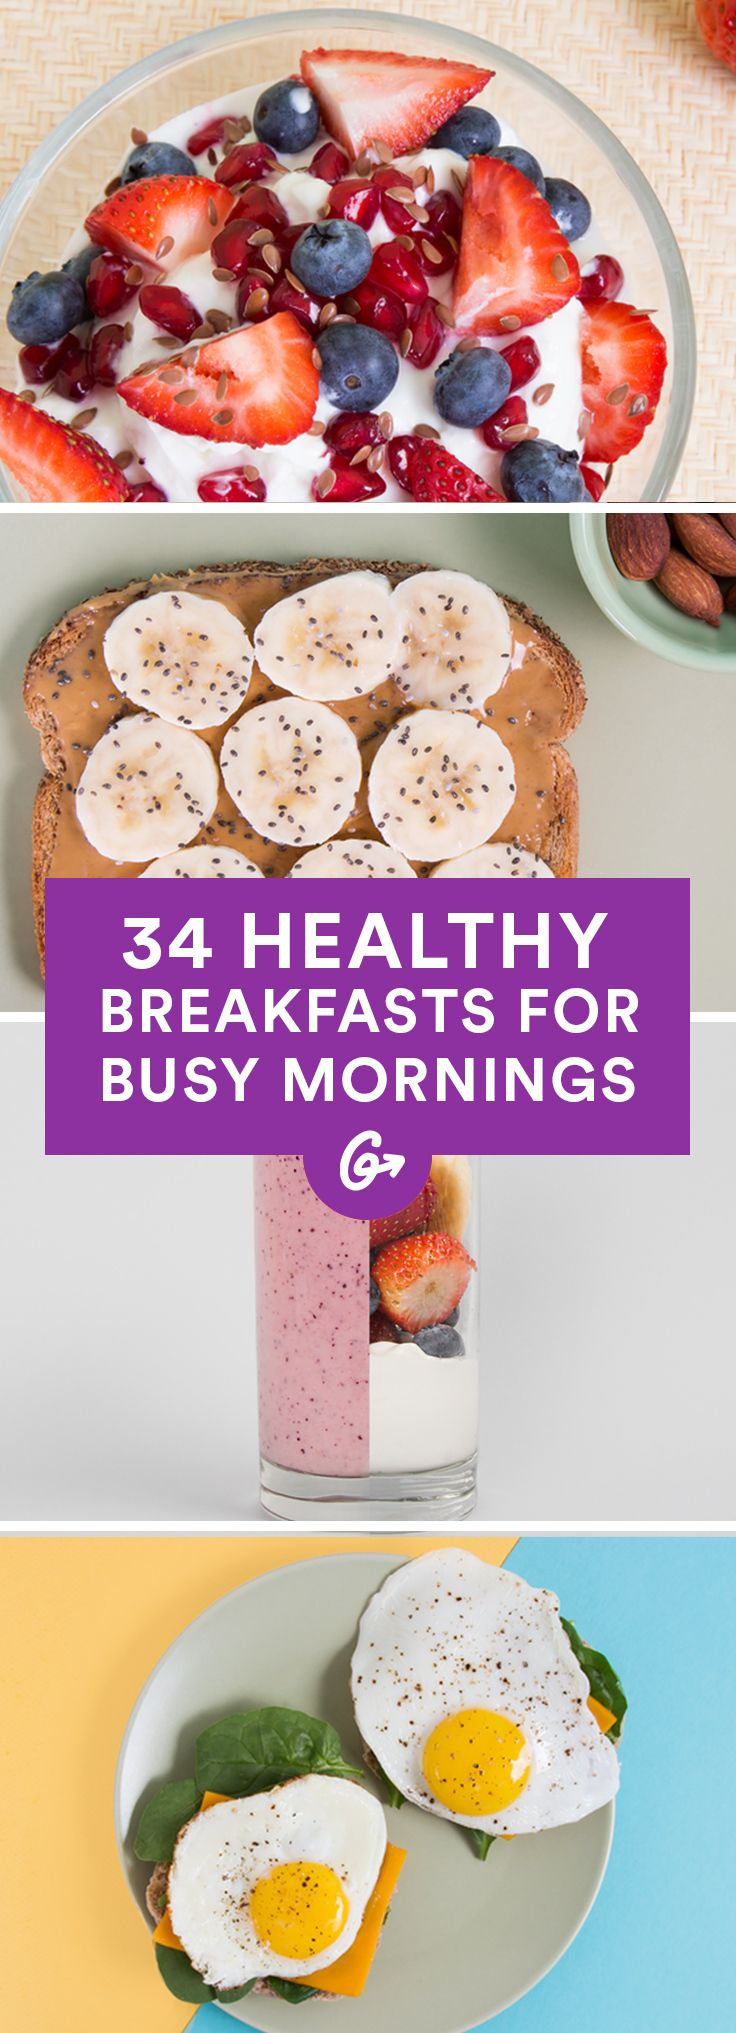 34 Healthy Breakfasts for Busy Mornings #healthy #breakfast | healthy recipe ideas @xhealthyrecipex |